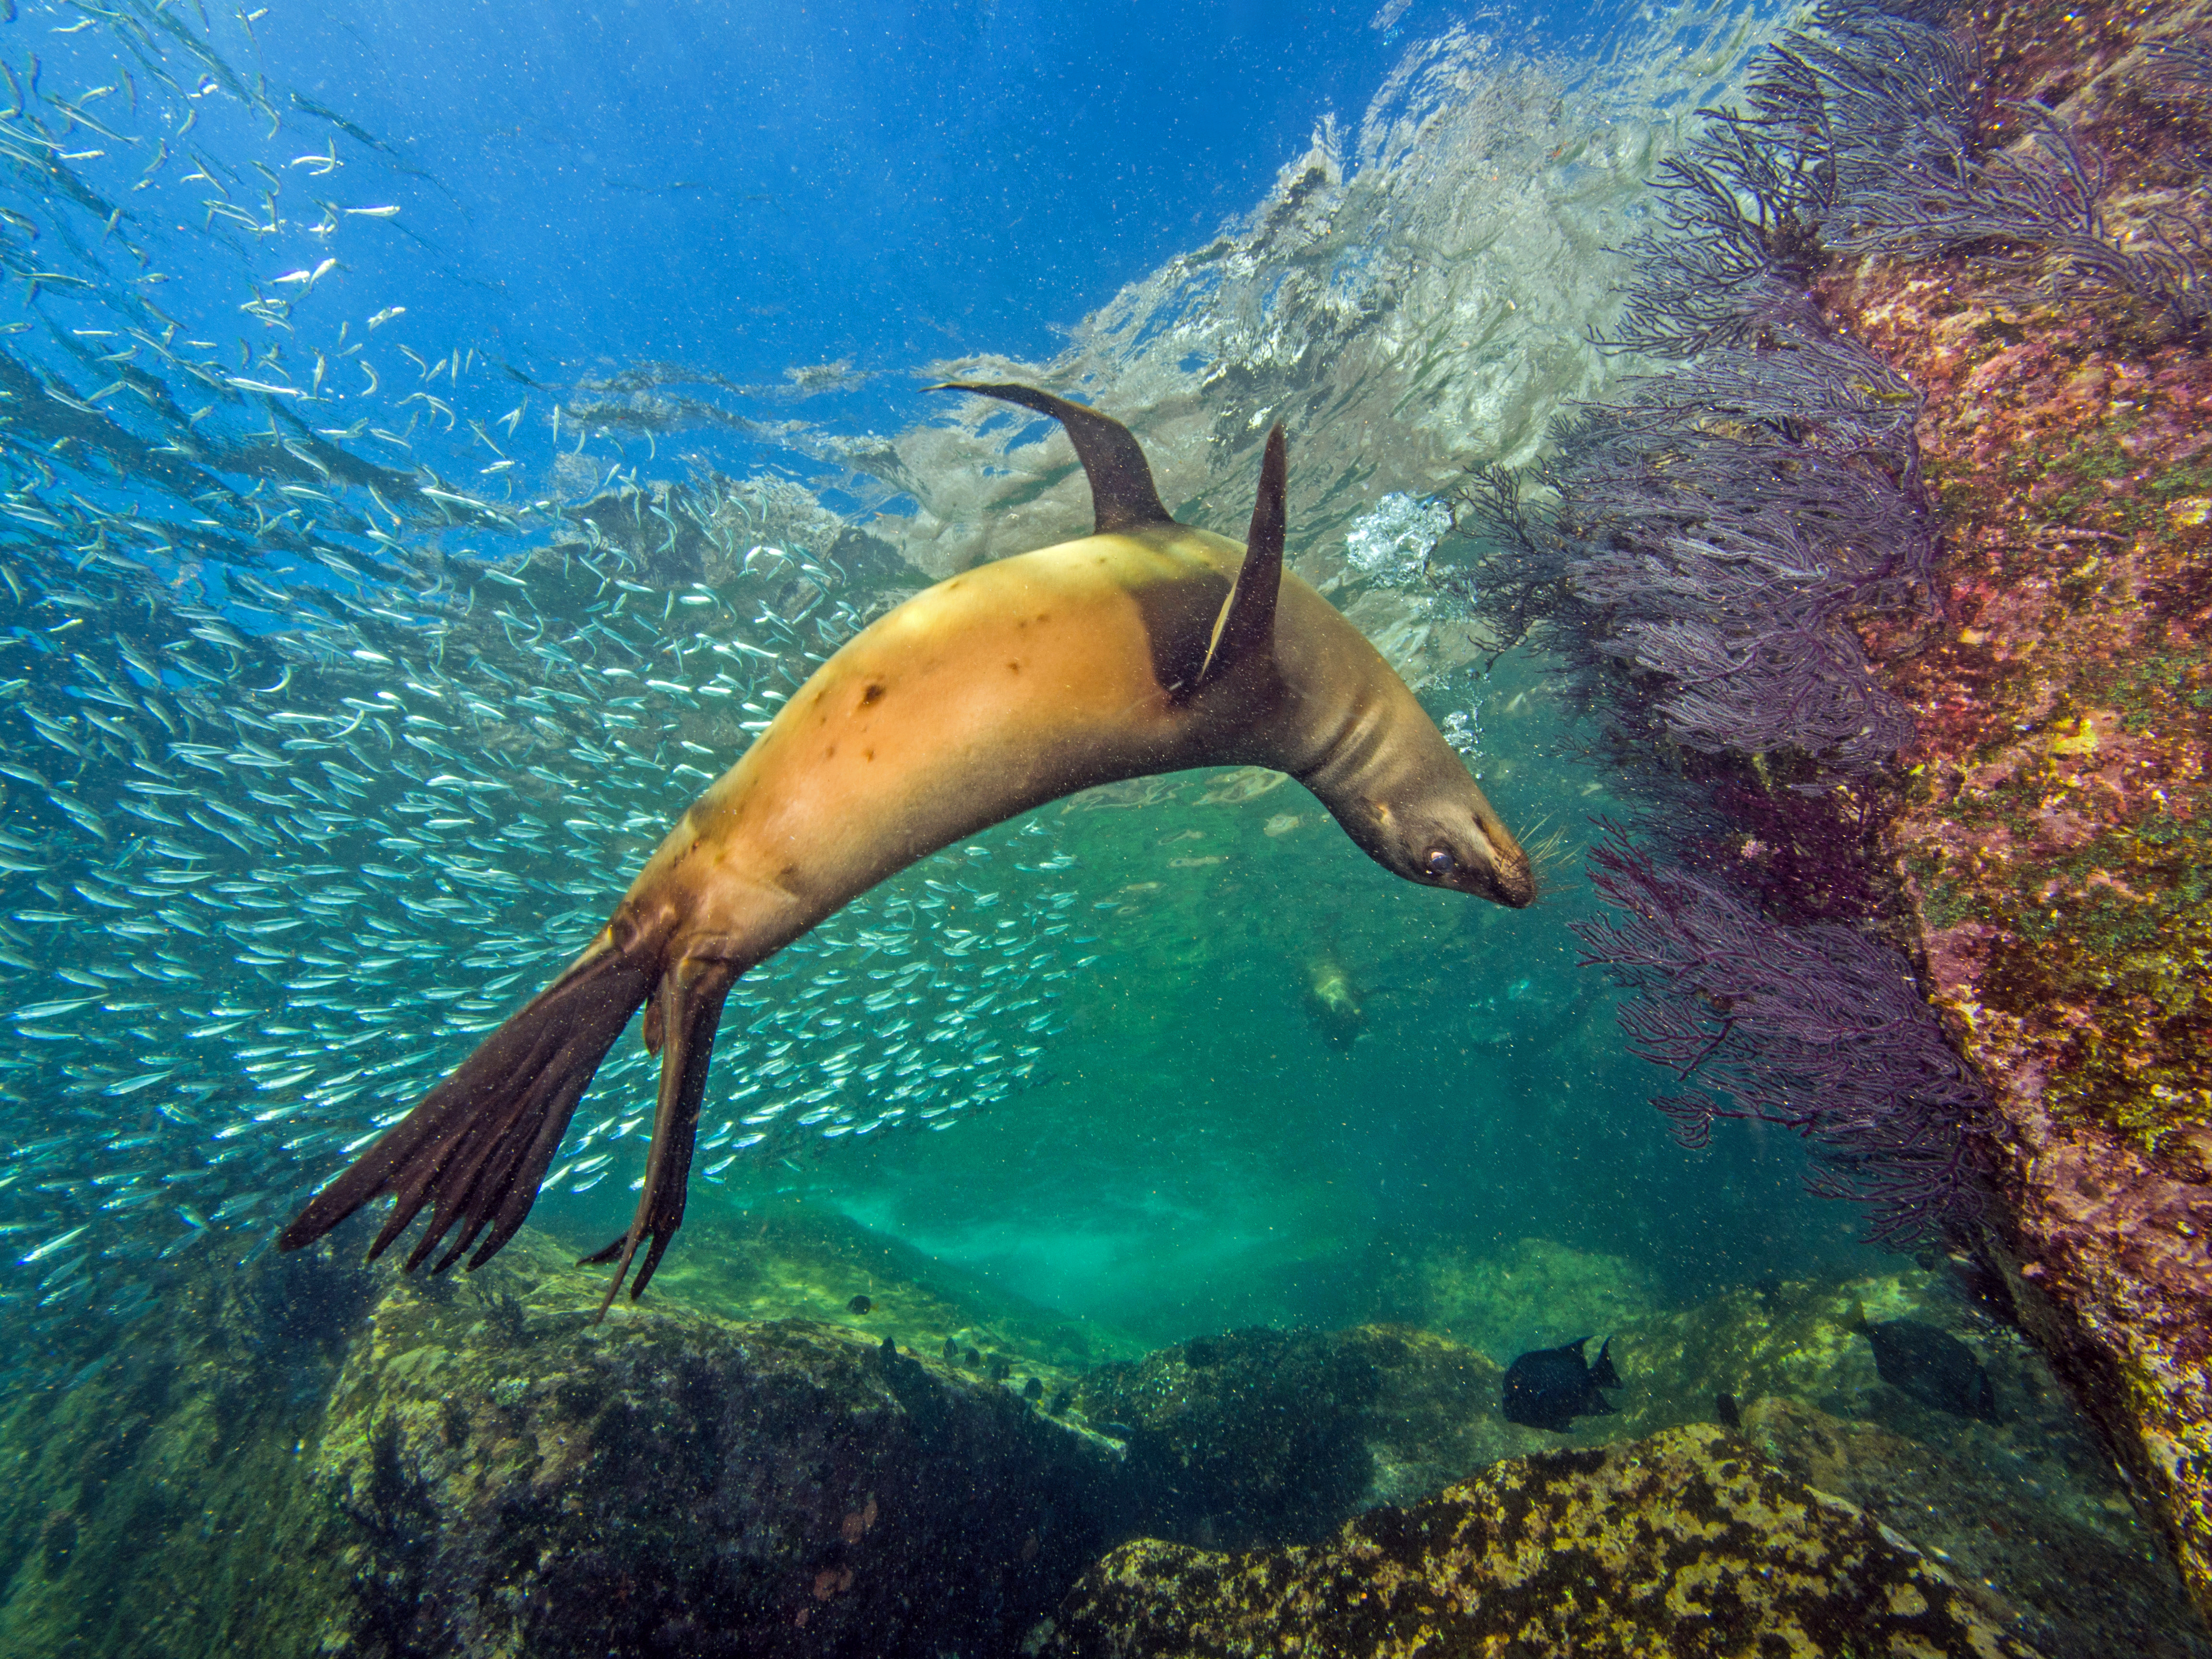 California sea lions at La Paz, Mexico, by Olga Torrey